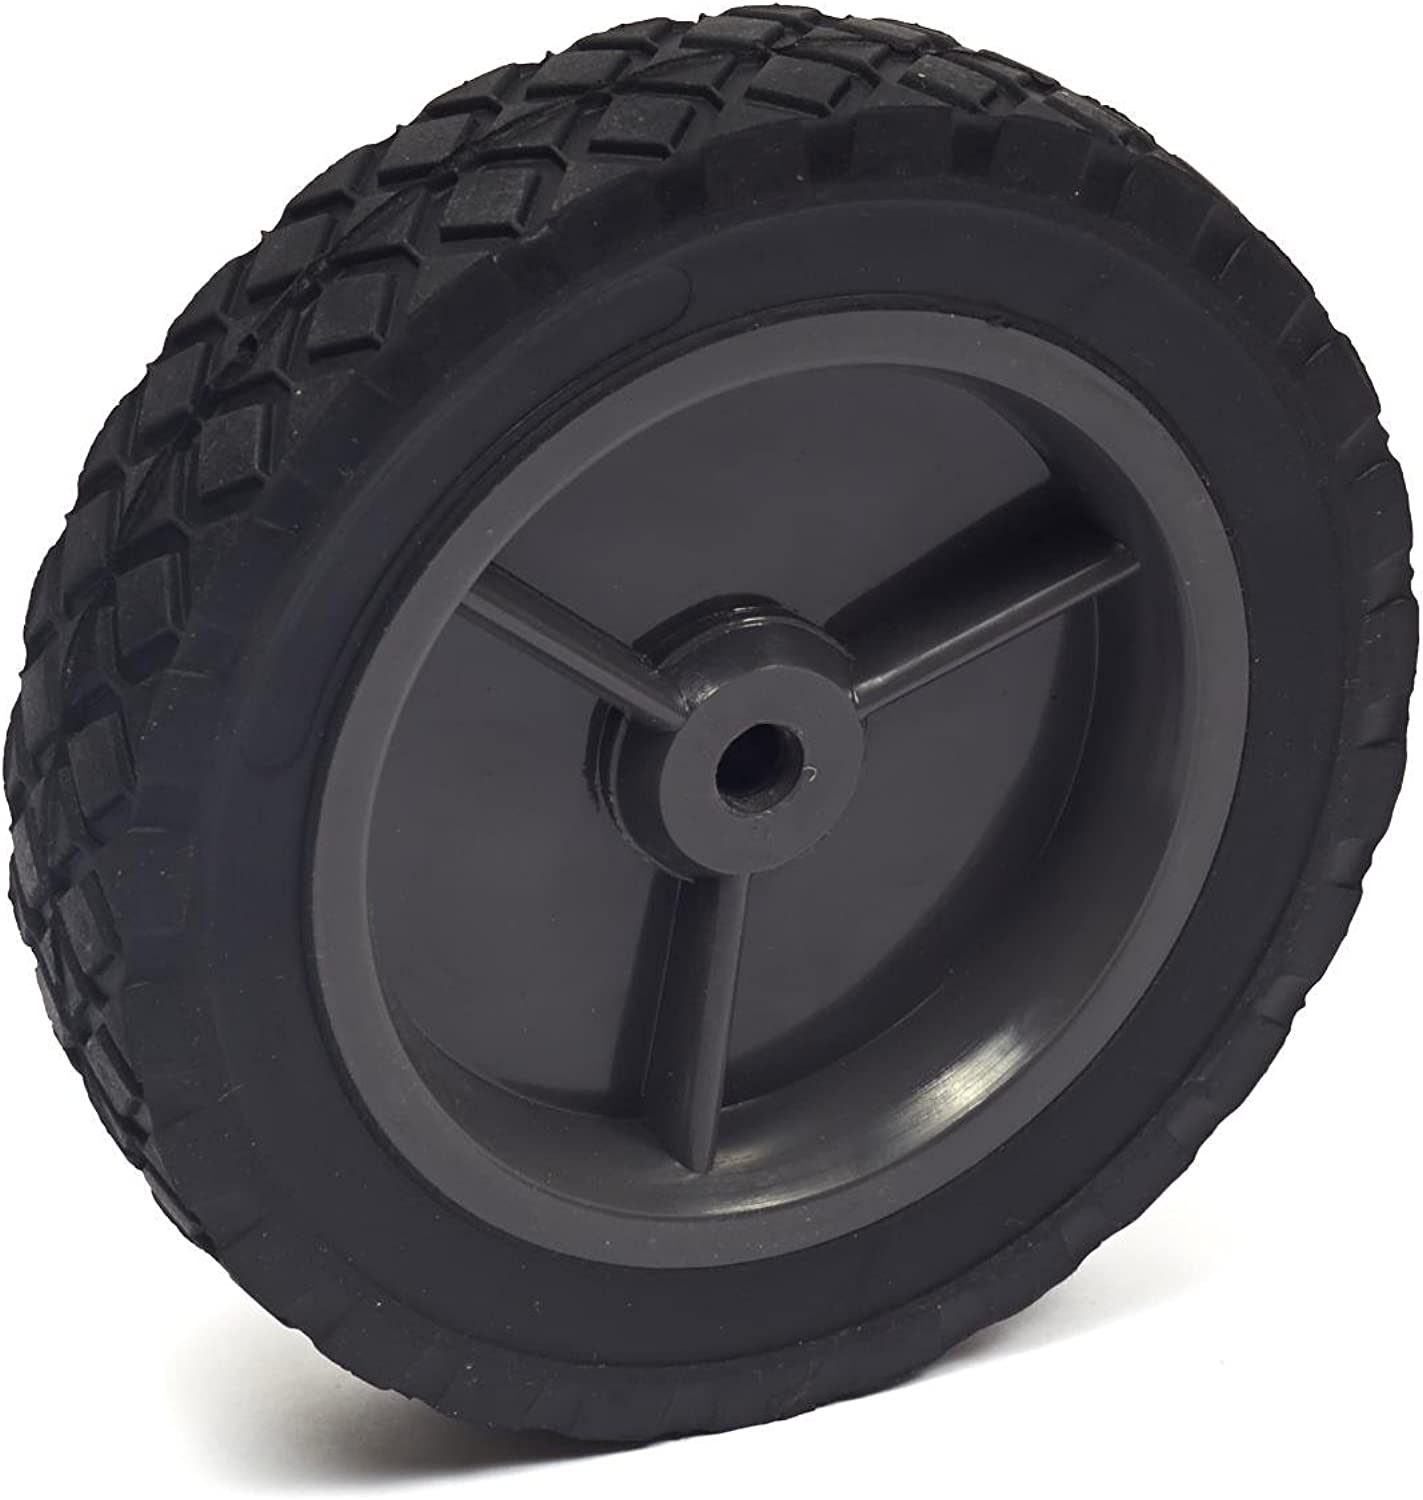 Briggs and Stratton 760714MA Tire & Rim, 7 x 1.5